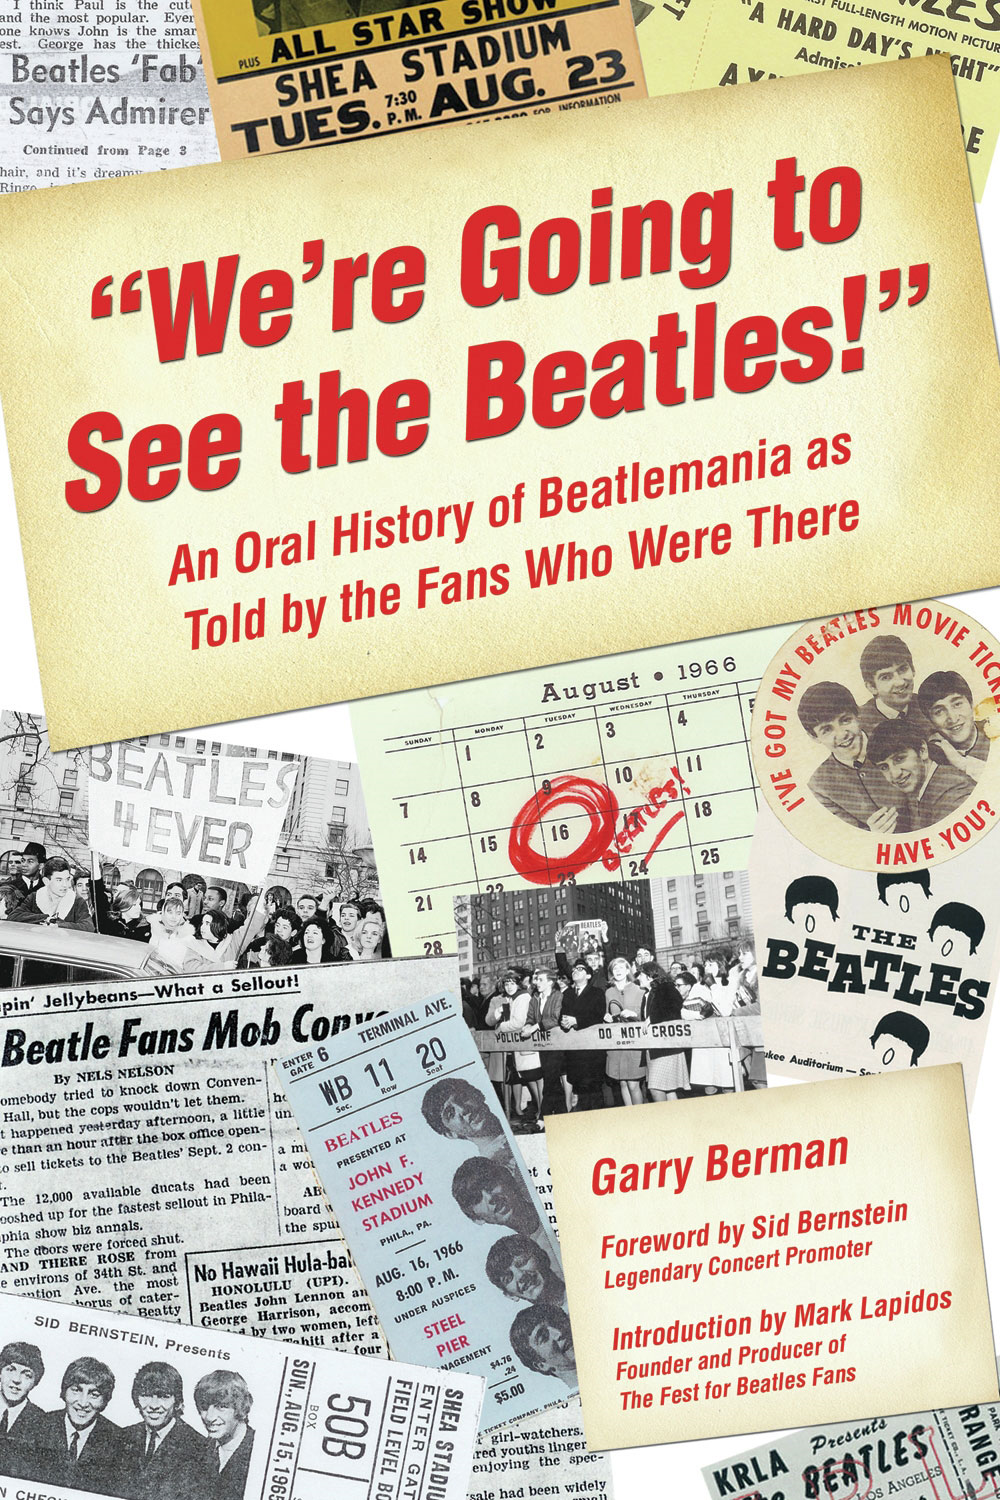 We're Going to See The Beatles!